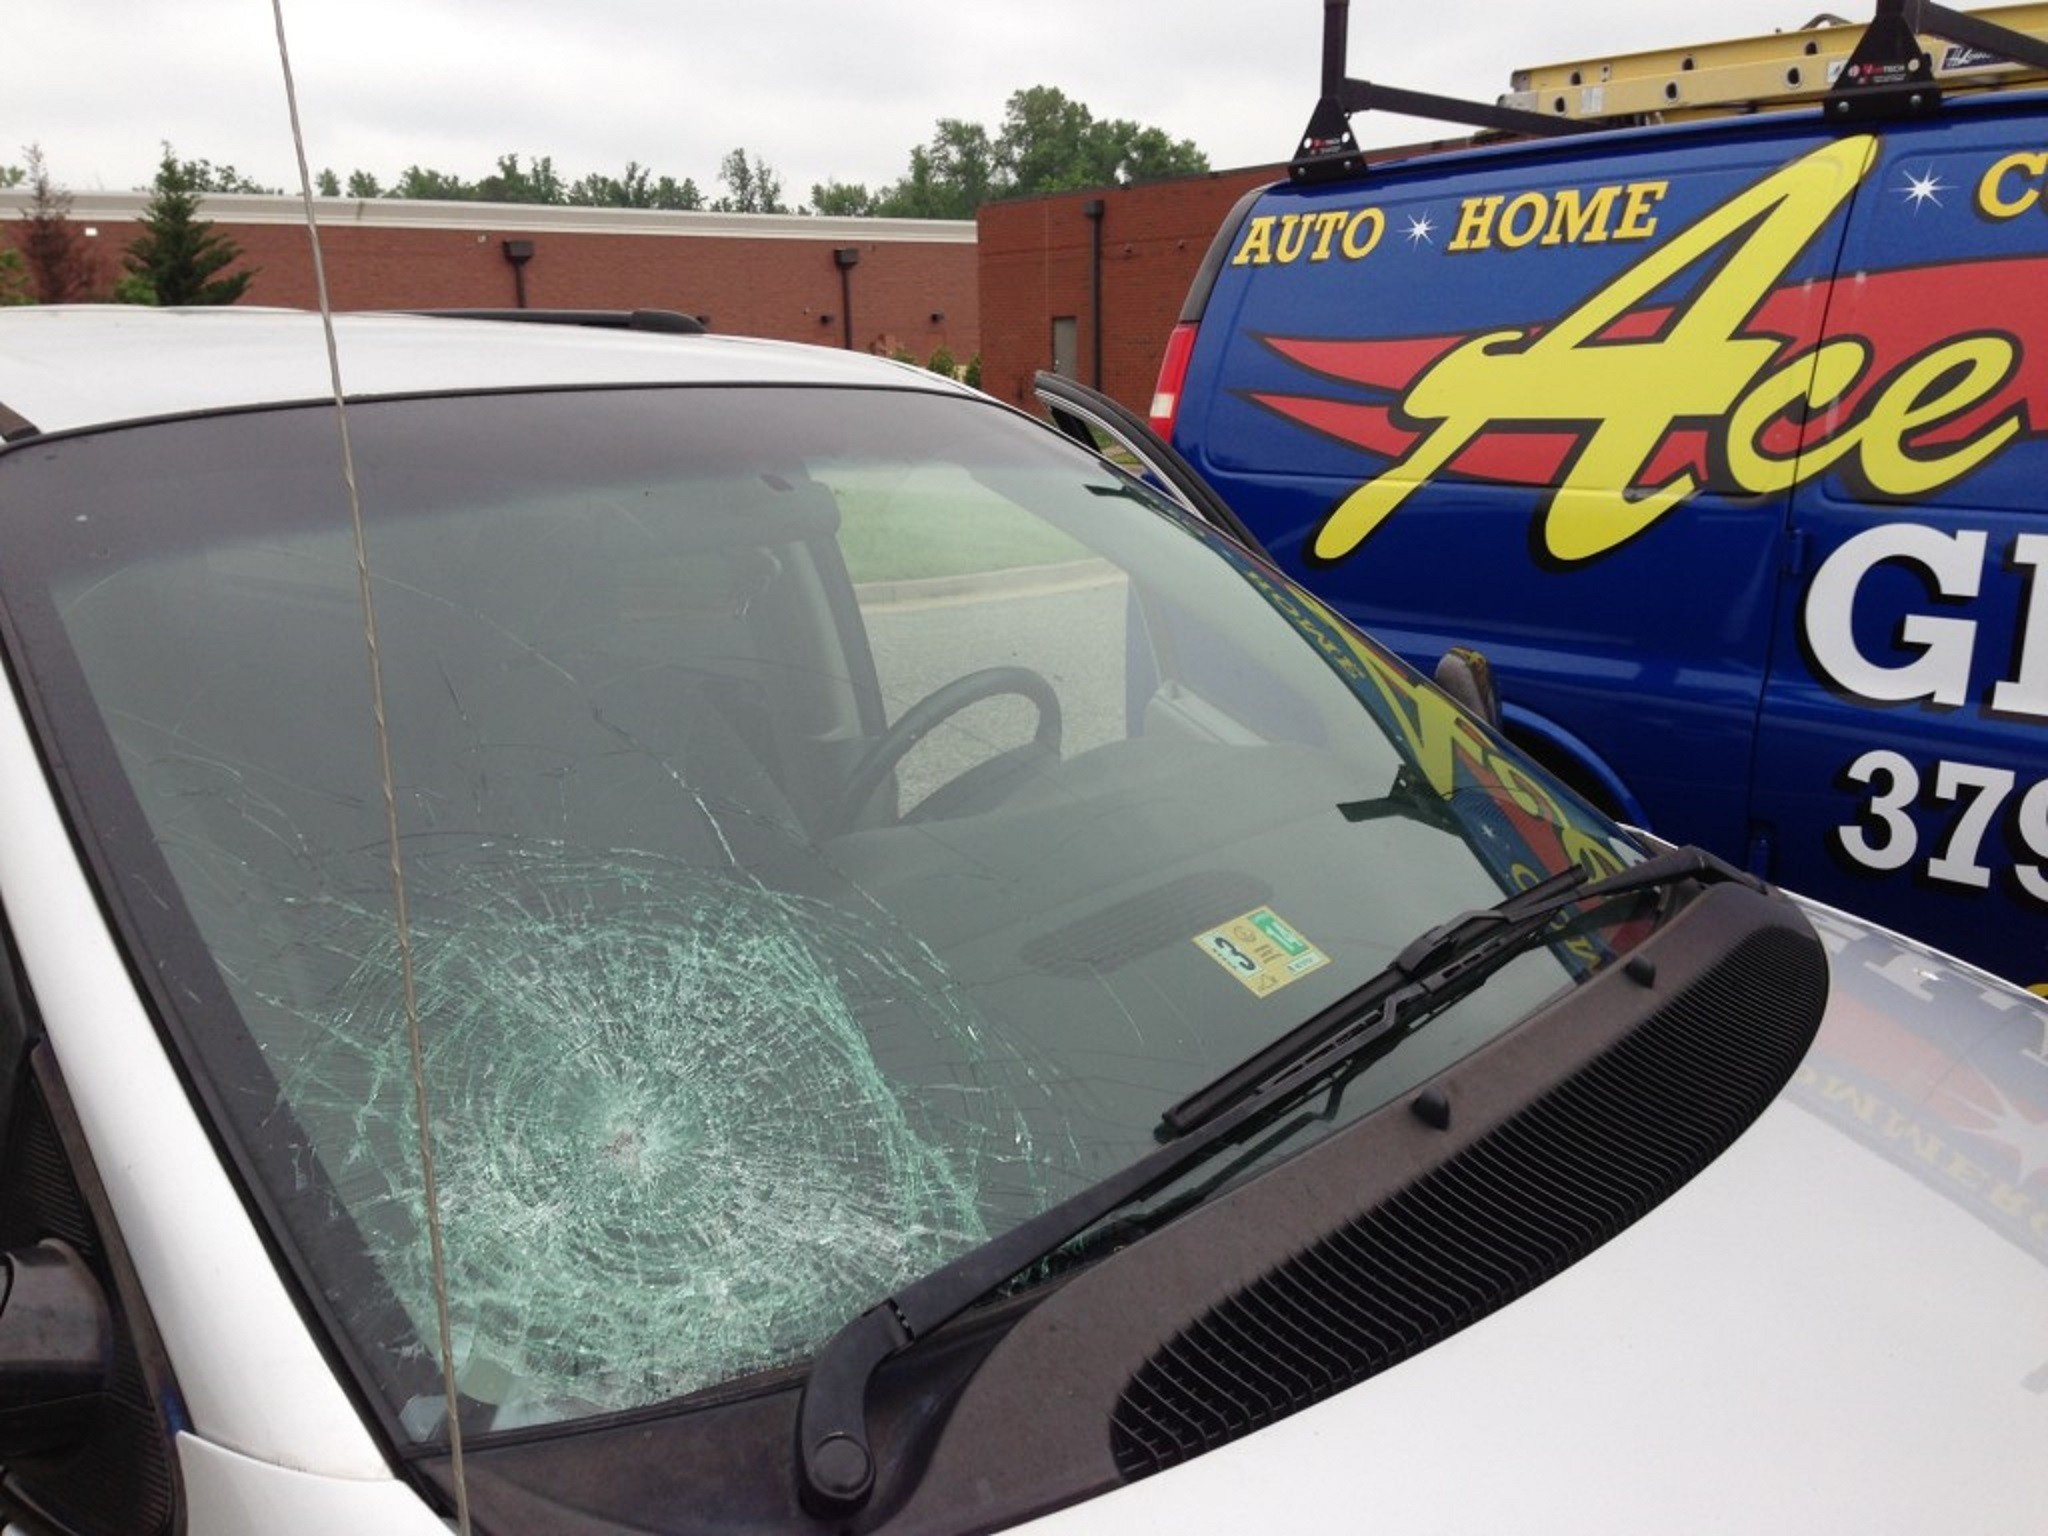 Windshield Repair Quote Mobile Auto Glass Repair In Richmond Va  Ace Glass